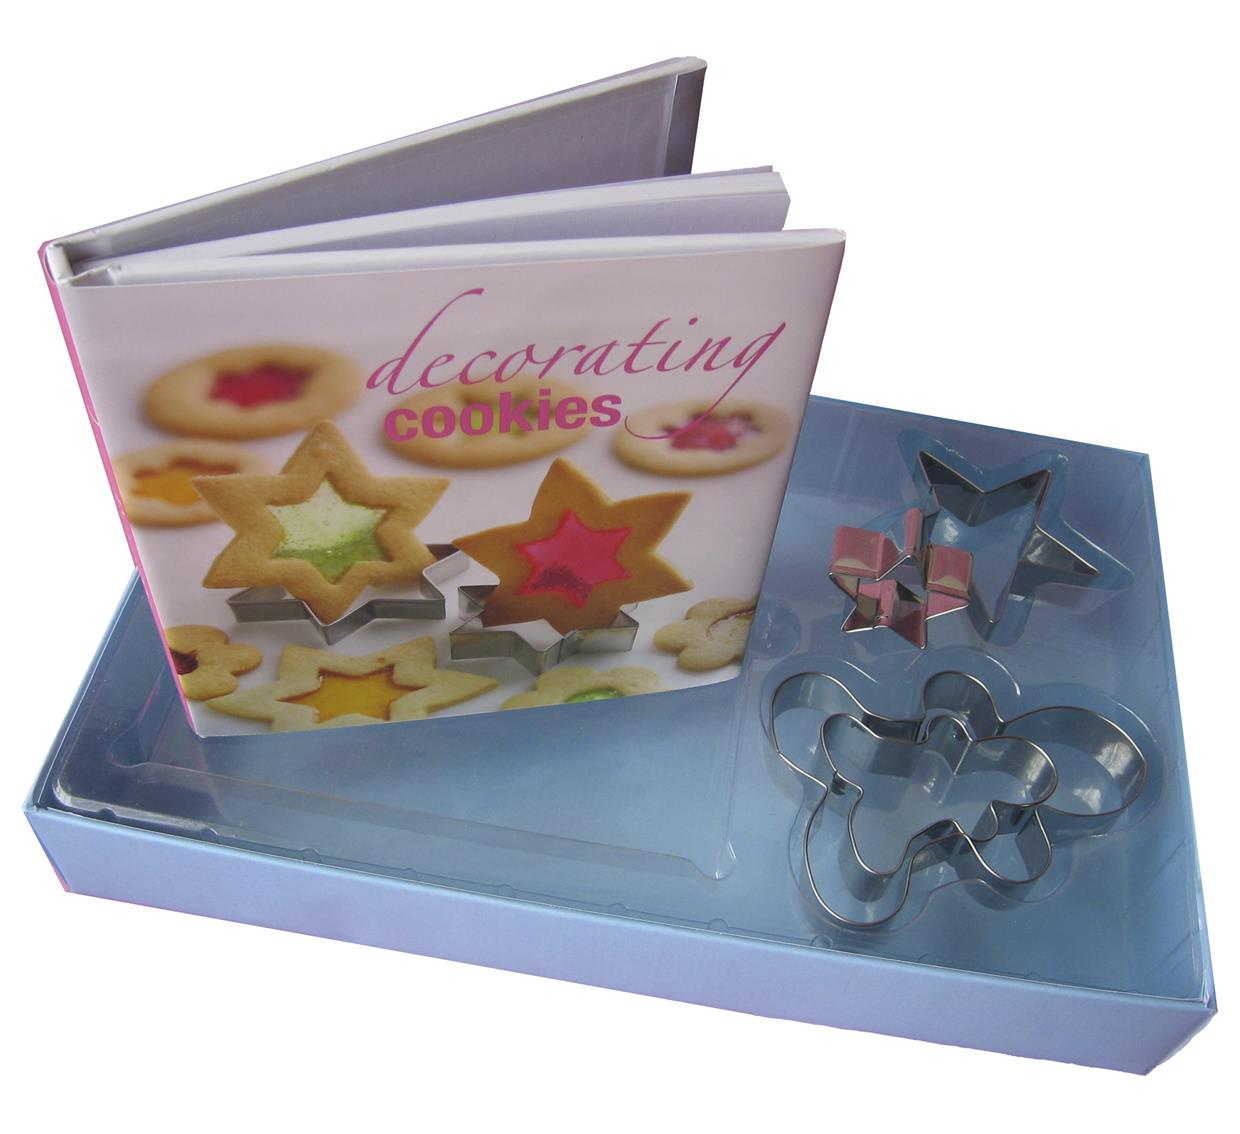 The Decorating Cookies Kit (Hardcover)